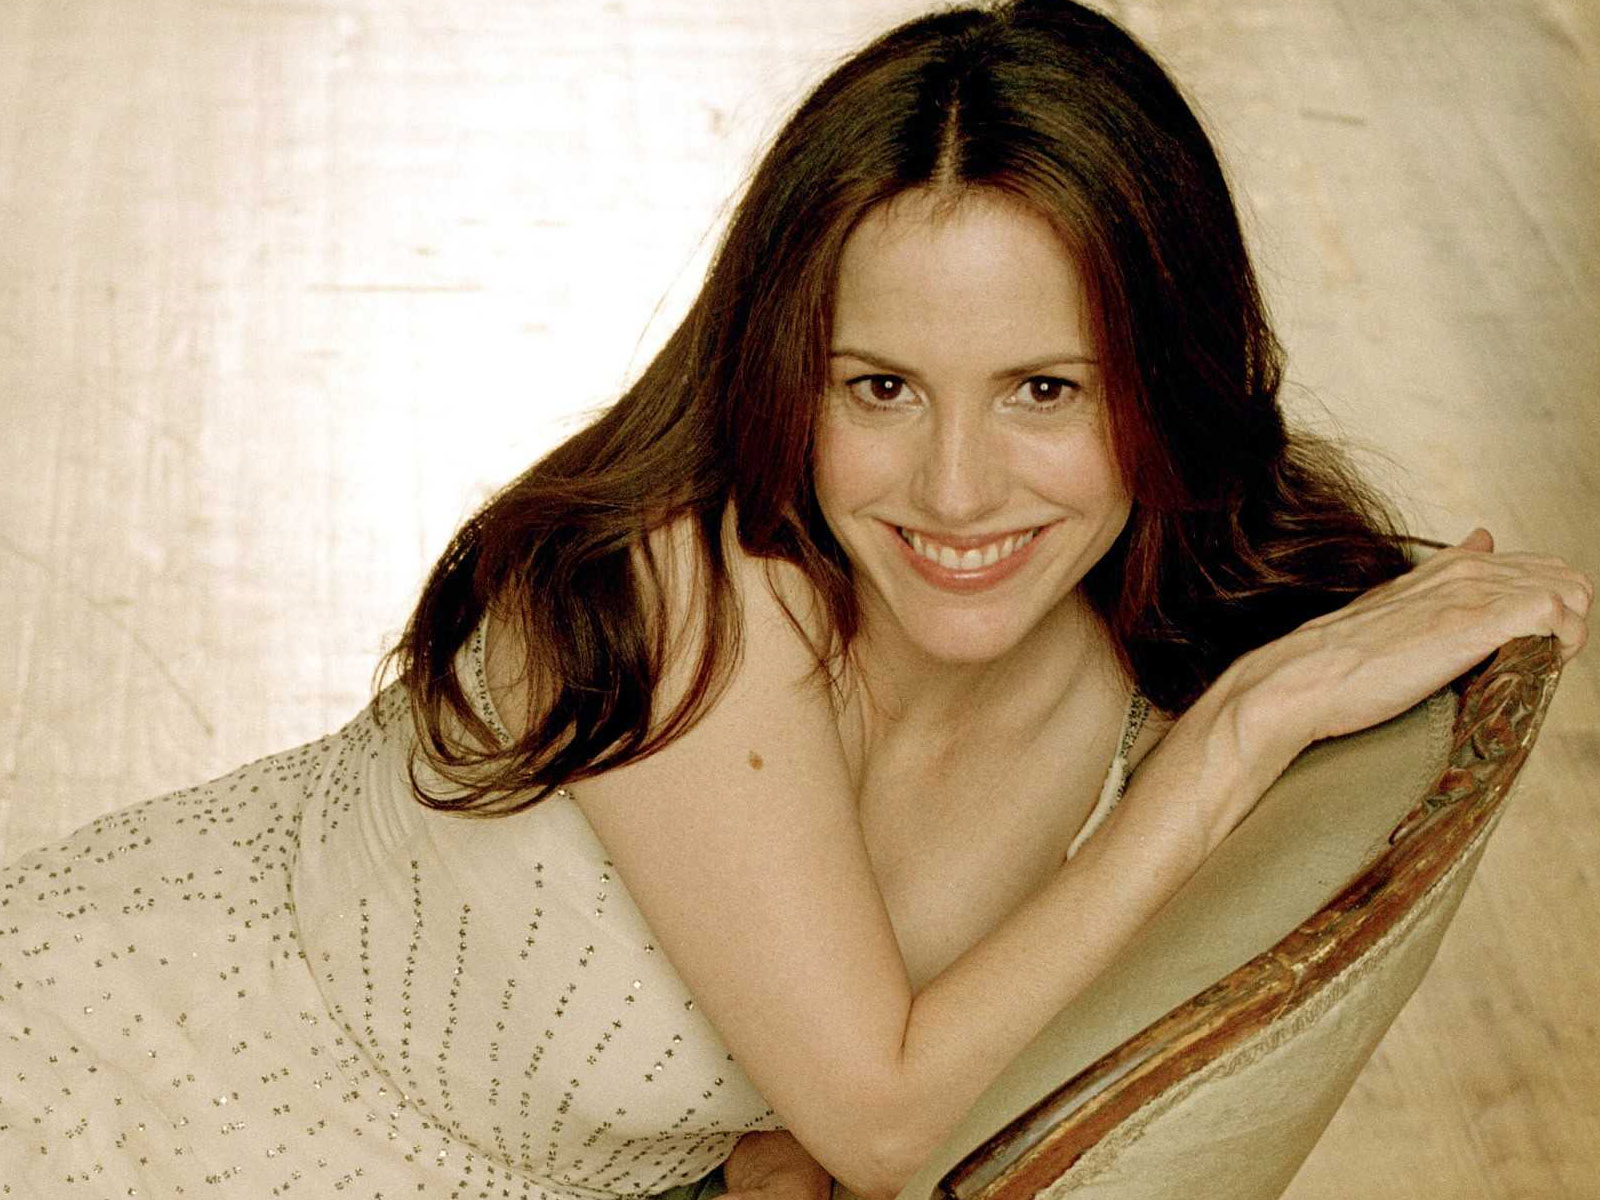 Mary louise parker wallpaper free hd backgrounds images pictures mary louise parker wallpaper voltagebd Gallery